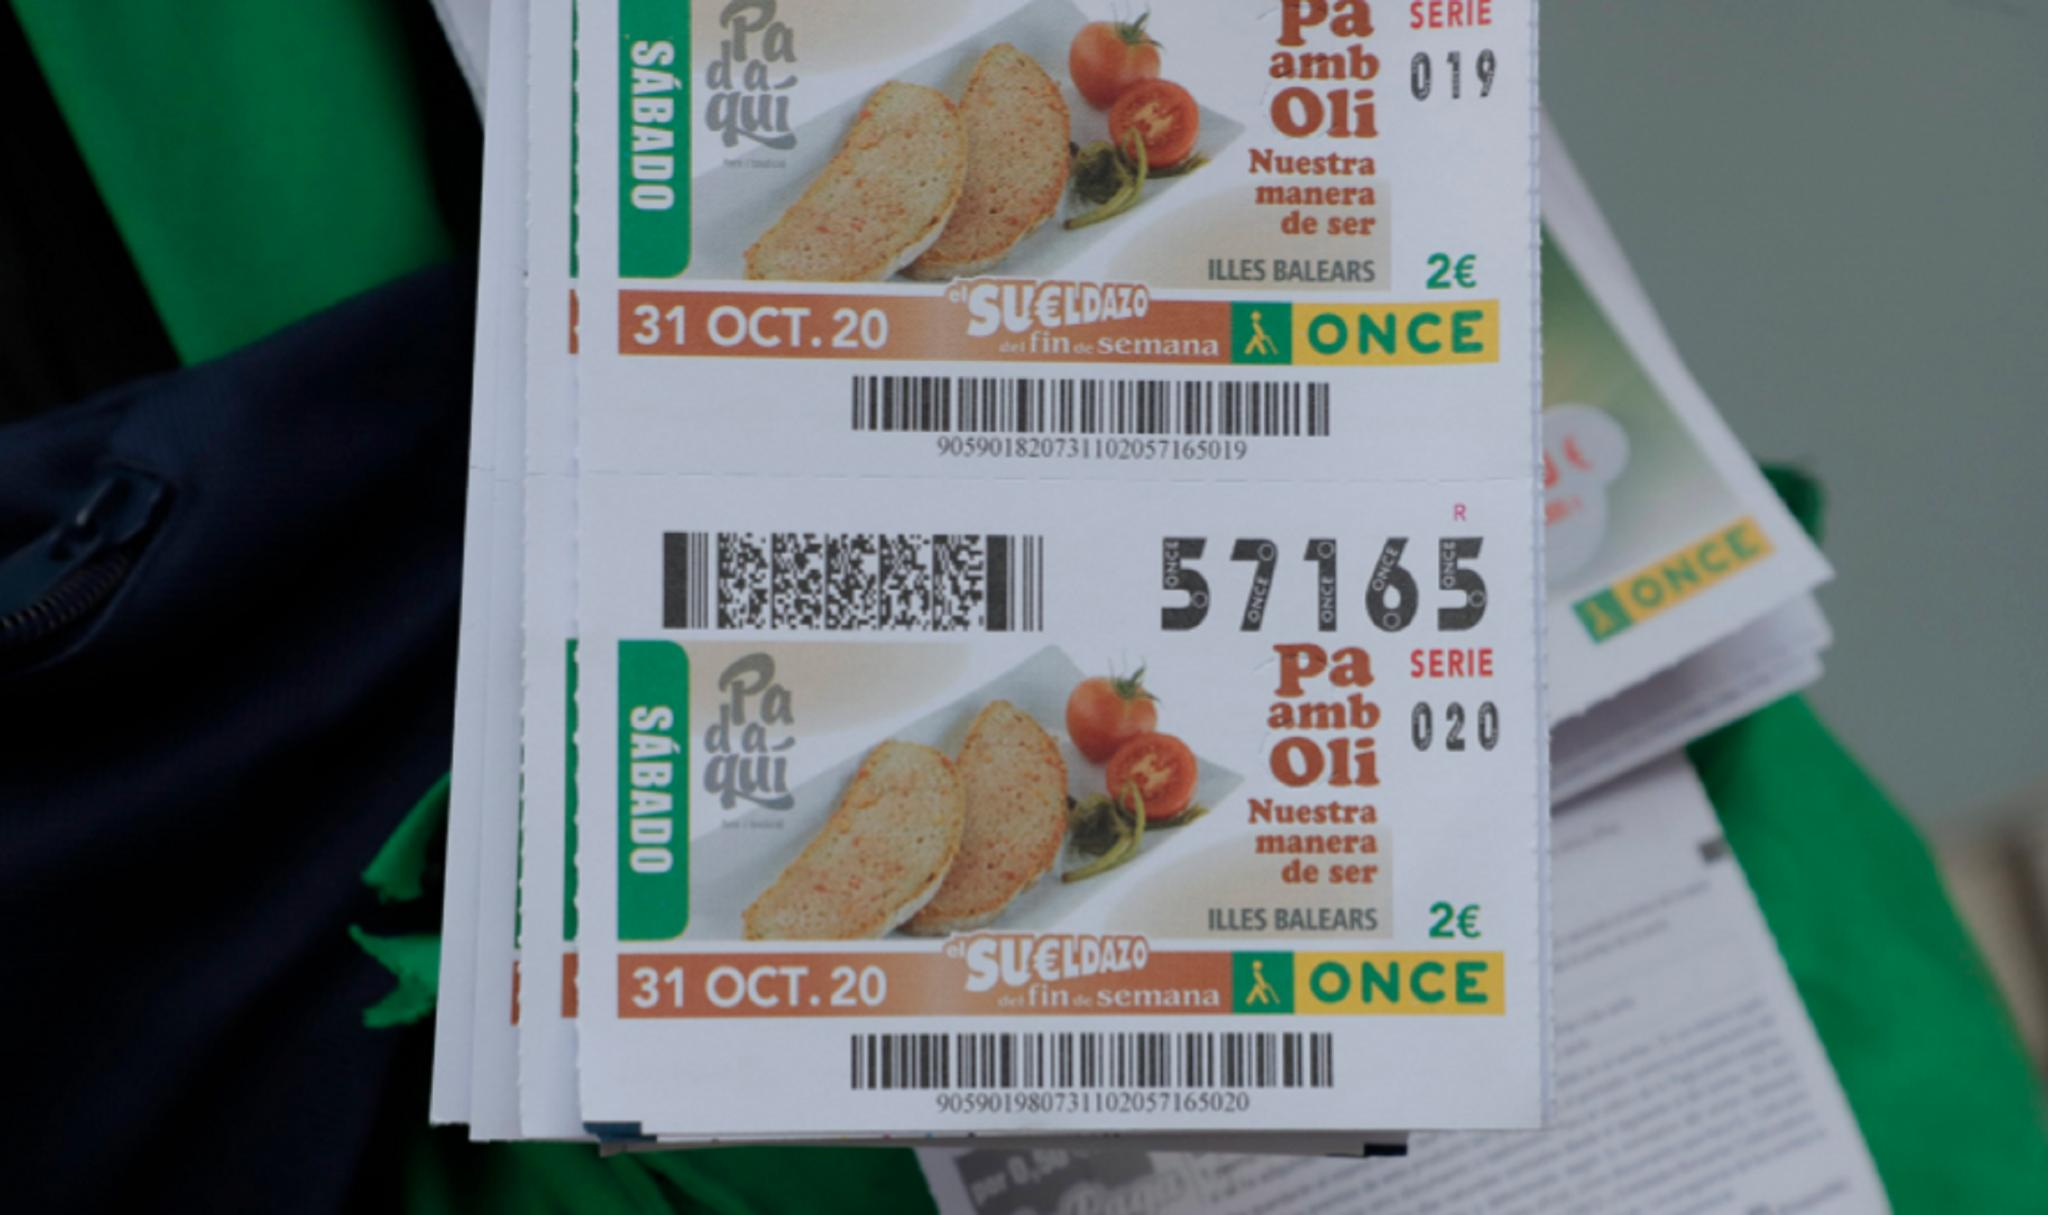 The lottery coupon with the pa amb oli